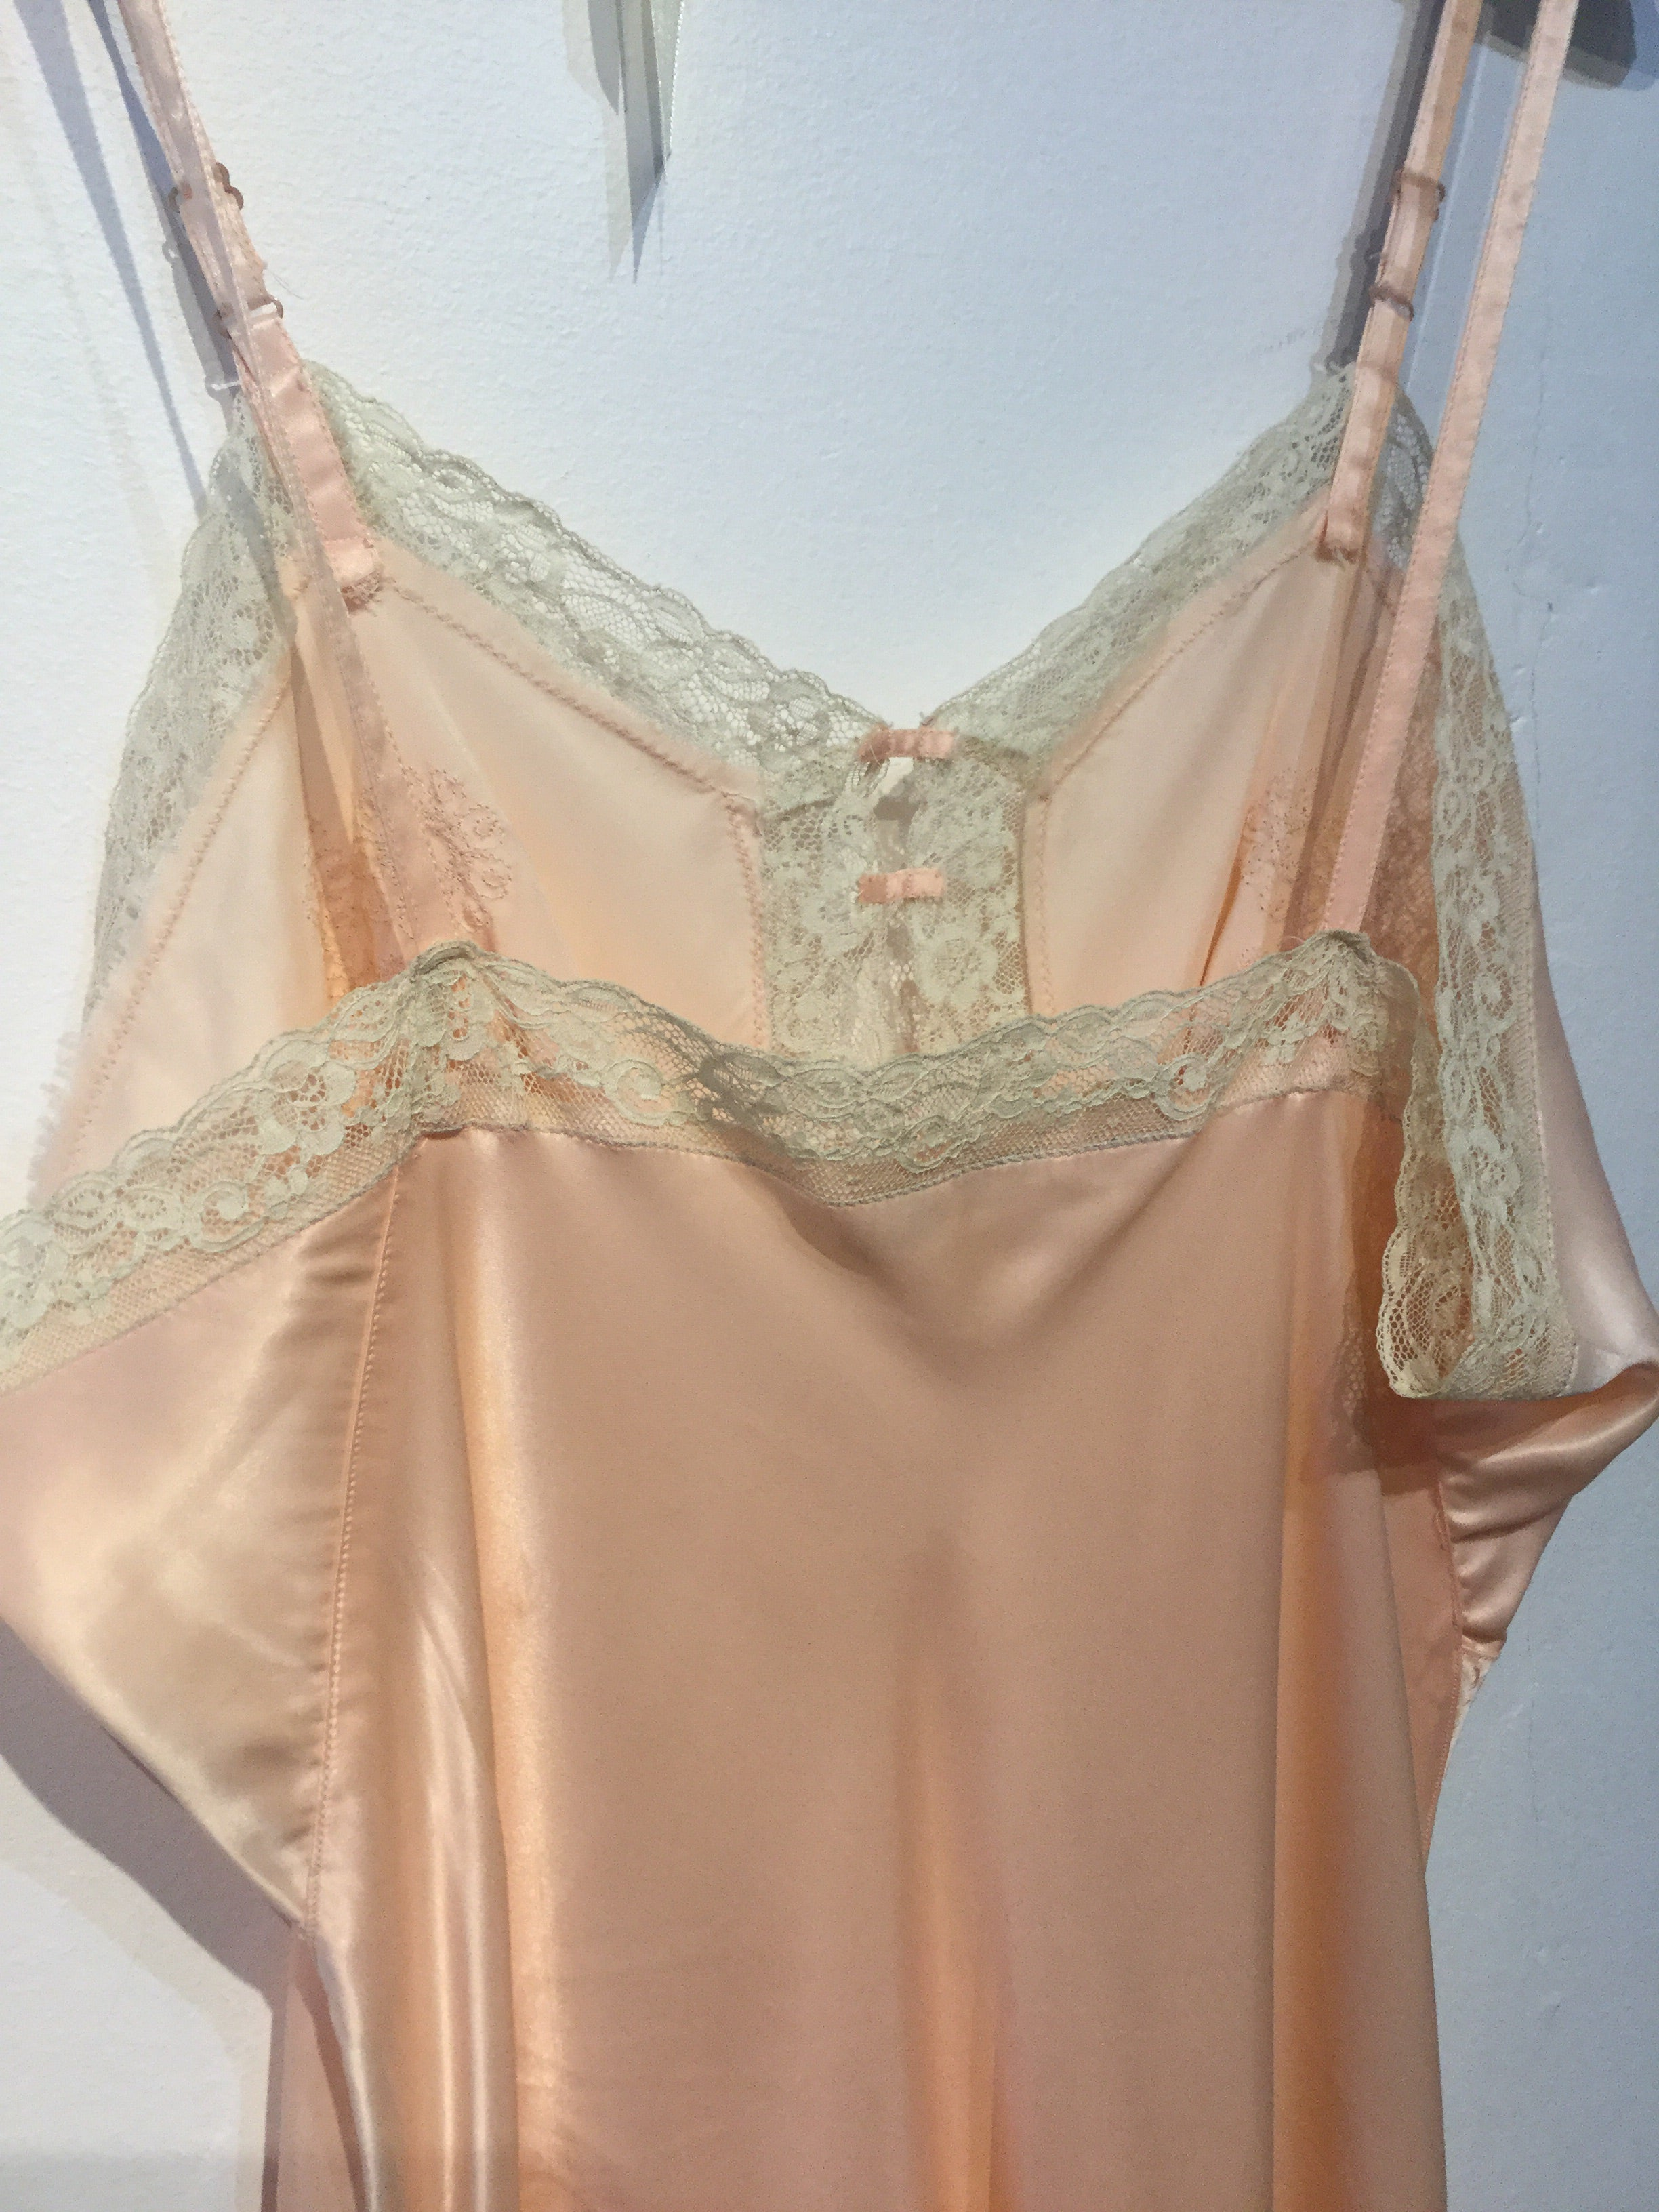 Deadstock NWT Pale Peach Slip with bunches of daisies embroidery L/XL+ #142